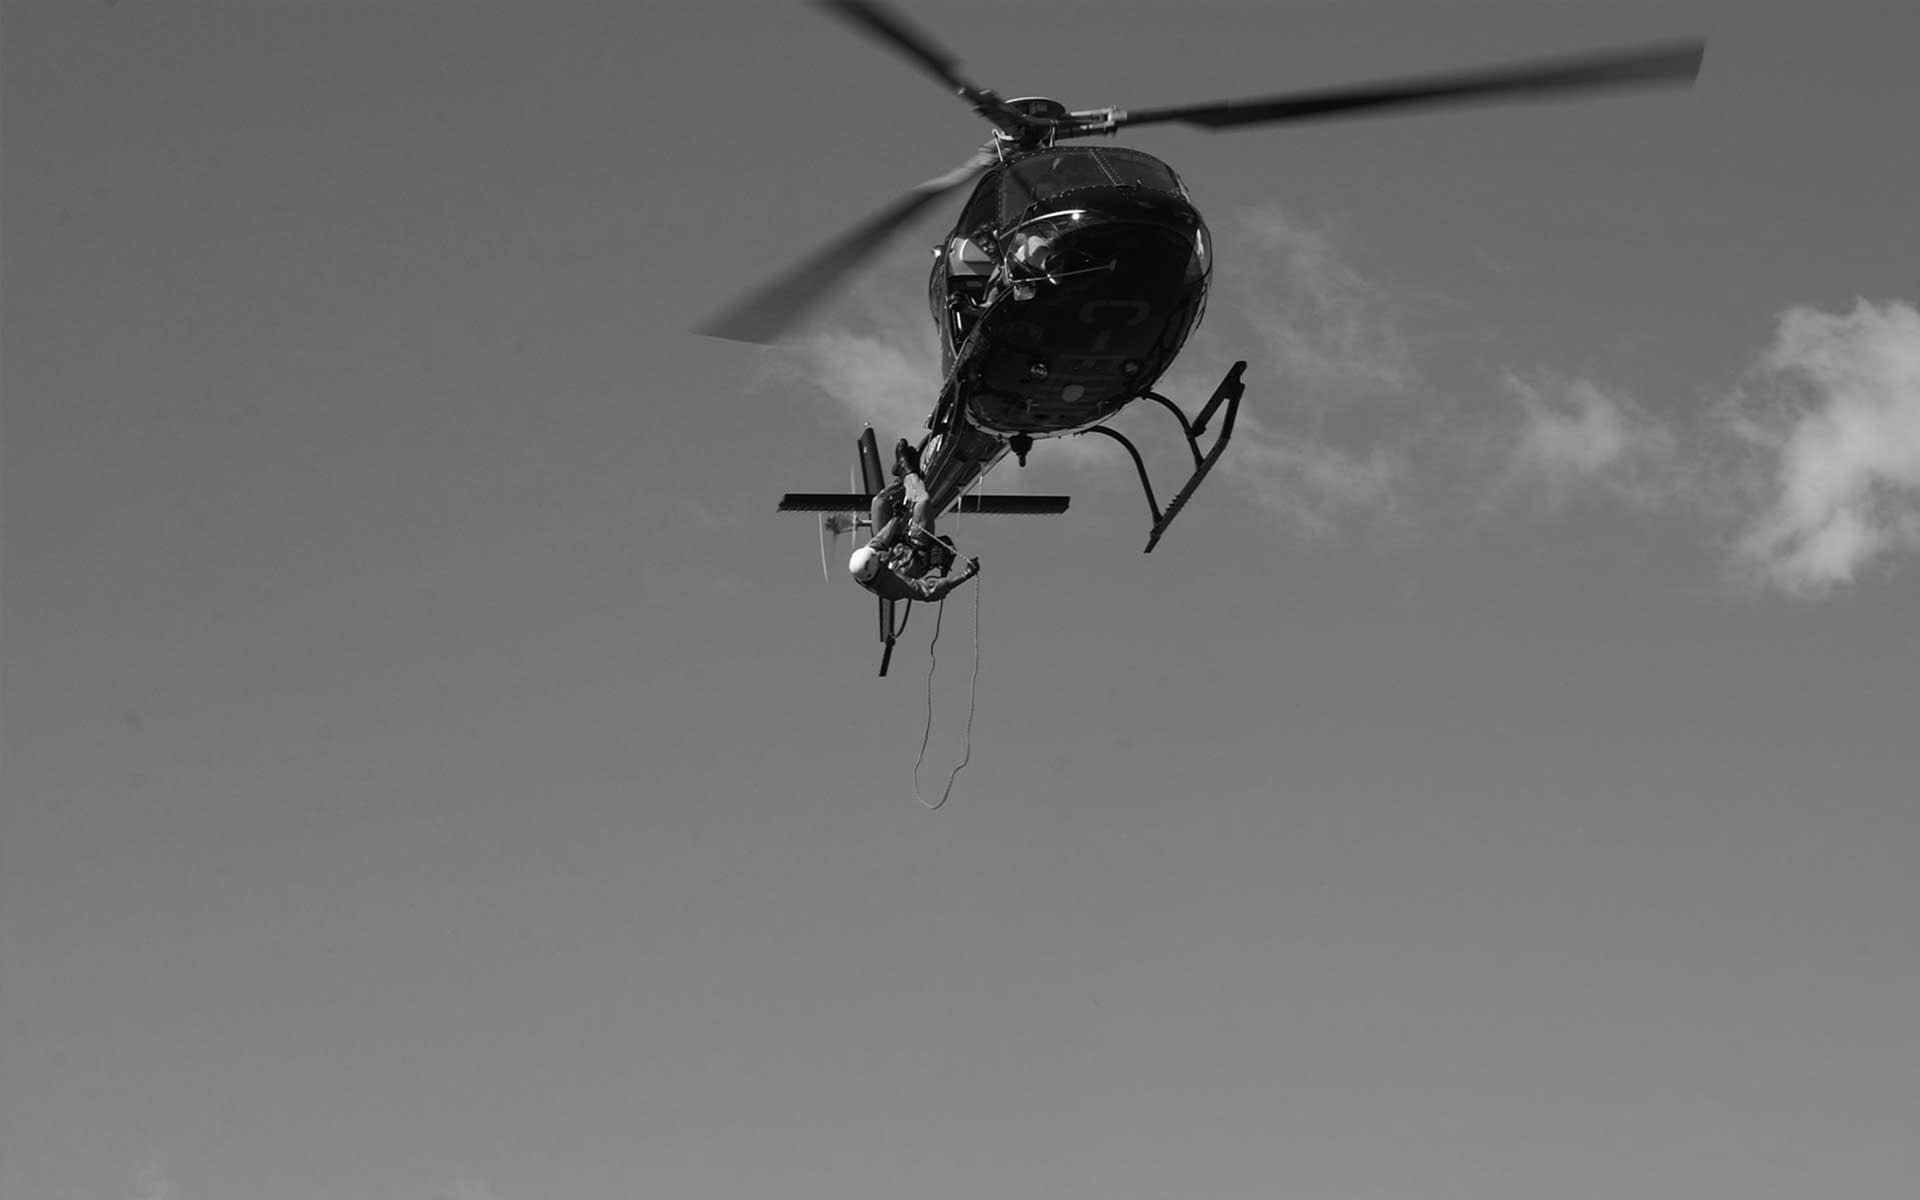 HELICOPTER RAPPELLING